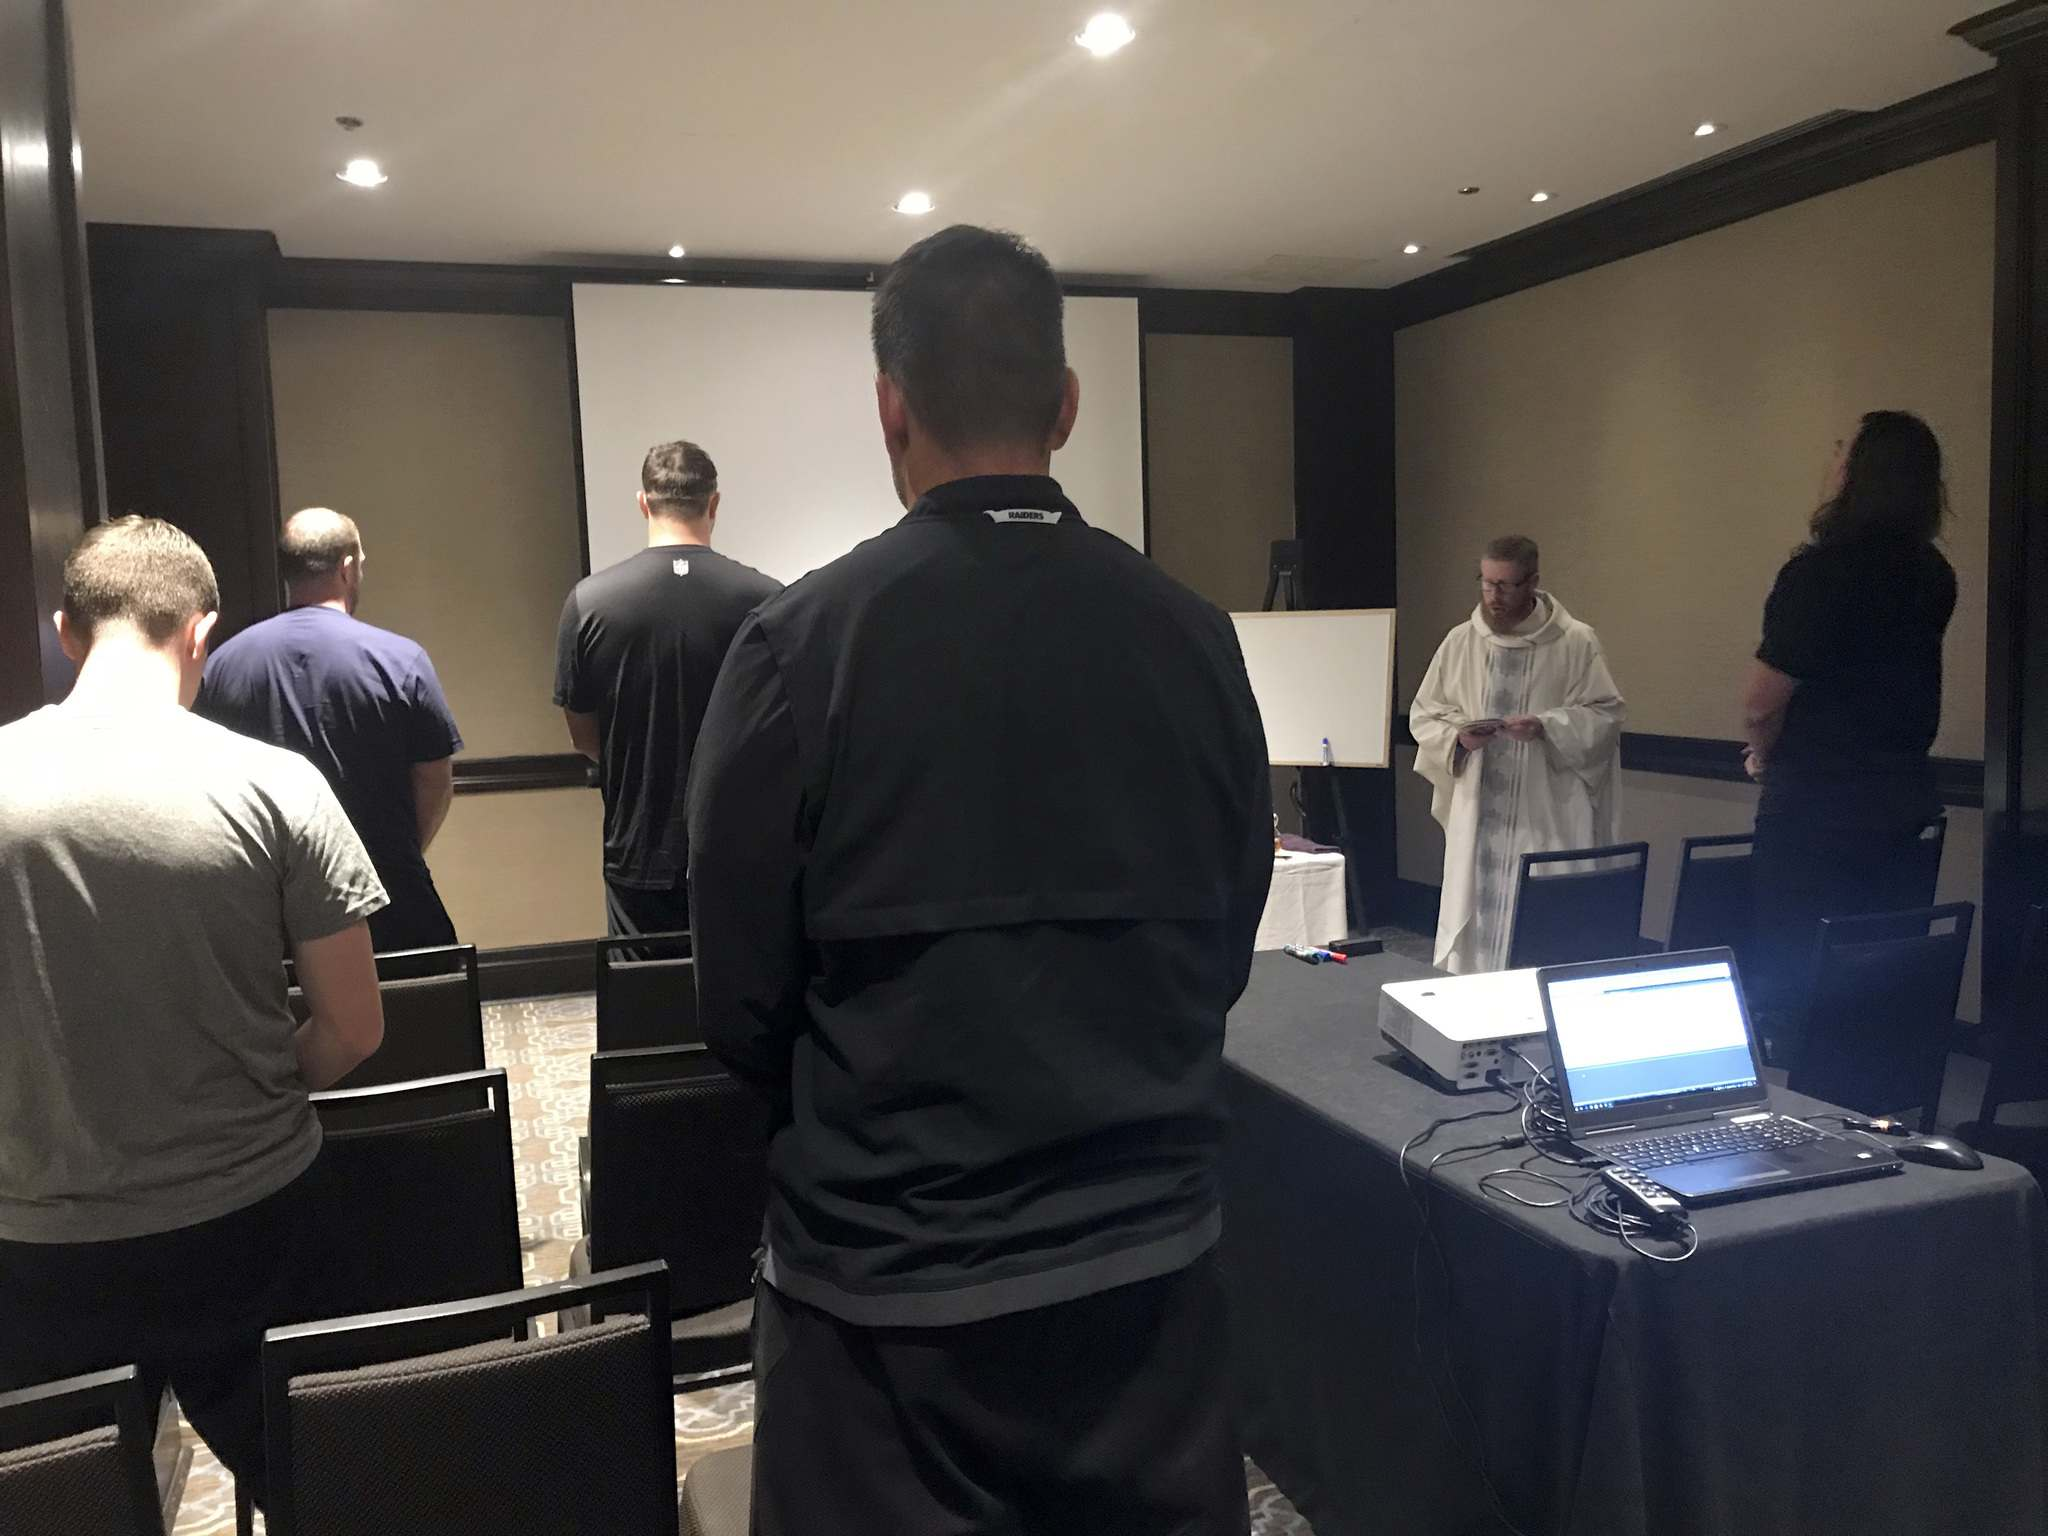 Christian Martinez / Archdiocese of Winnipeg</p><p>Father Kelly Wilson leads the service for the Oakland Raiders at the Fairmont Hotel Wednesday.</p>